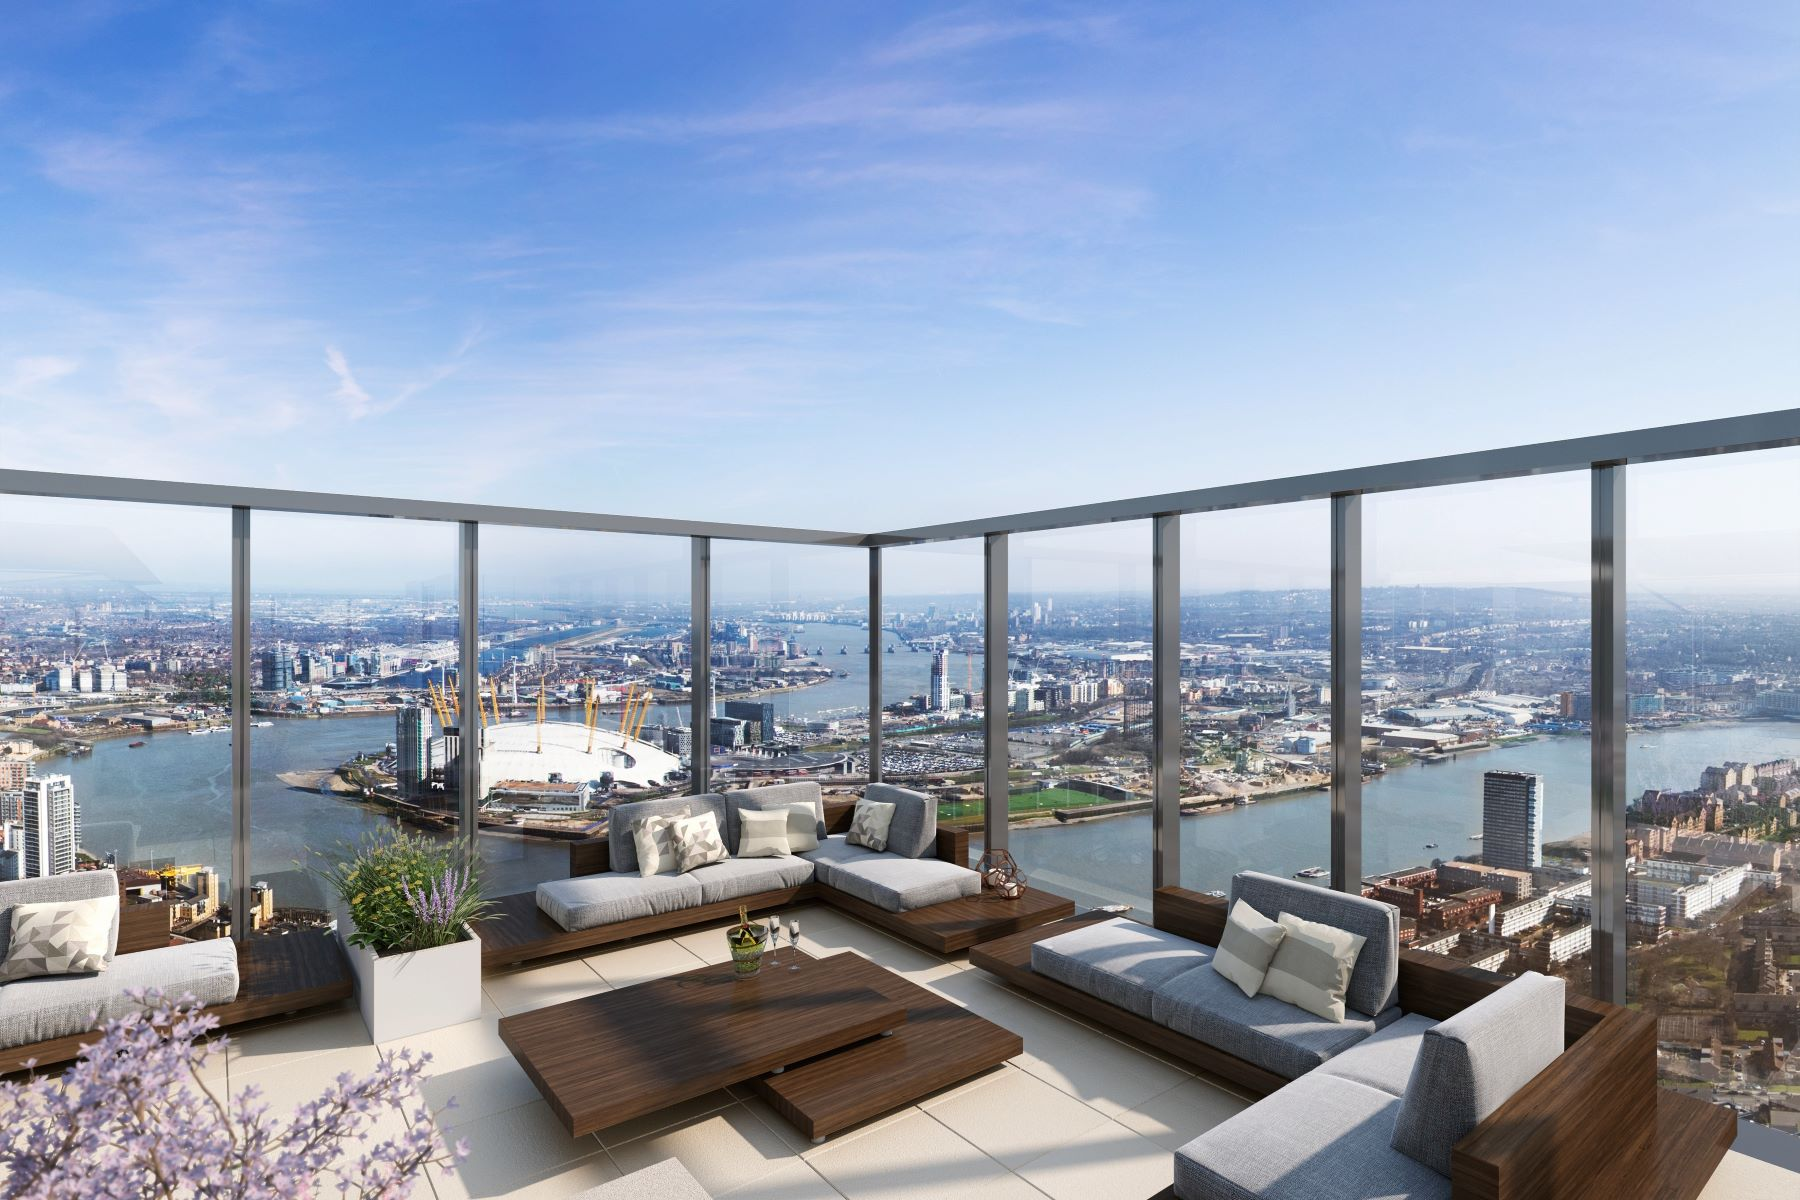 Apartments for Sale at 43.11 Valiant Tower London, England E14 9SH United Kingdom